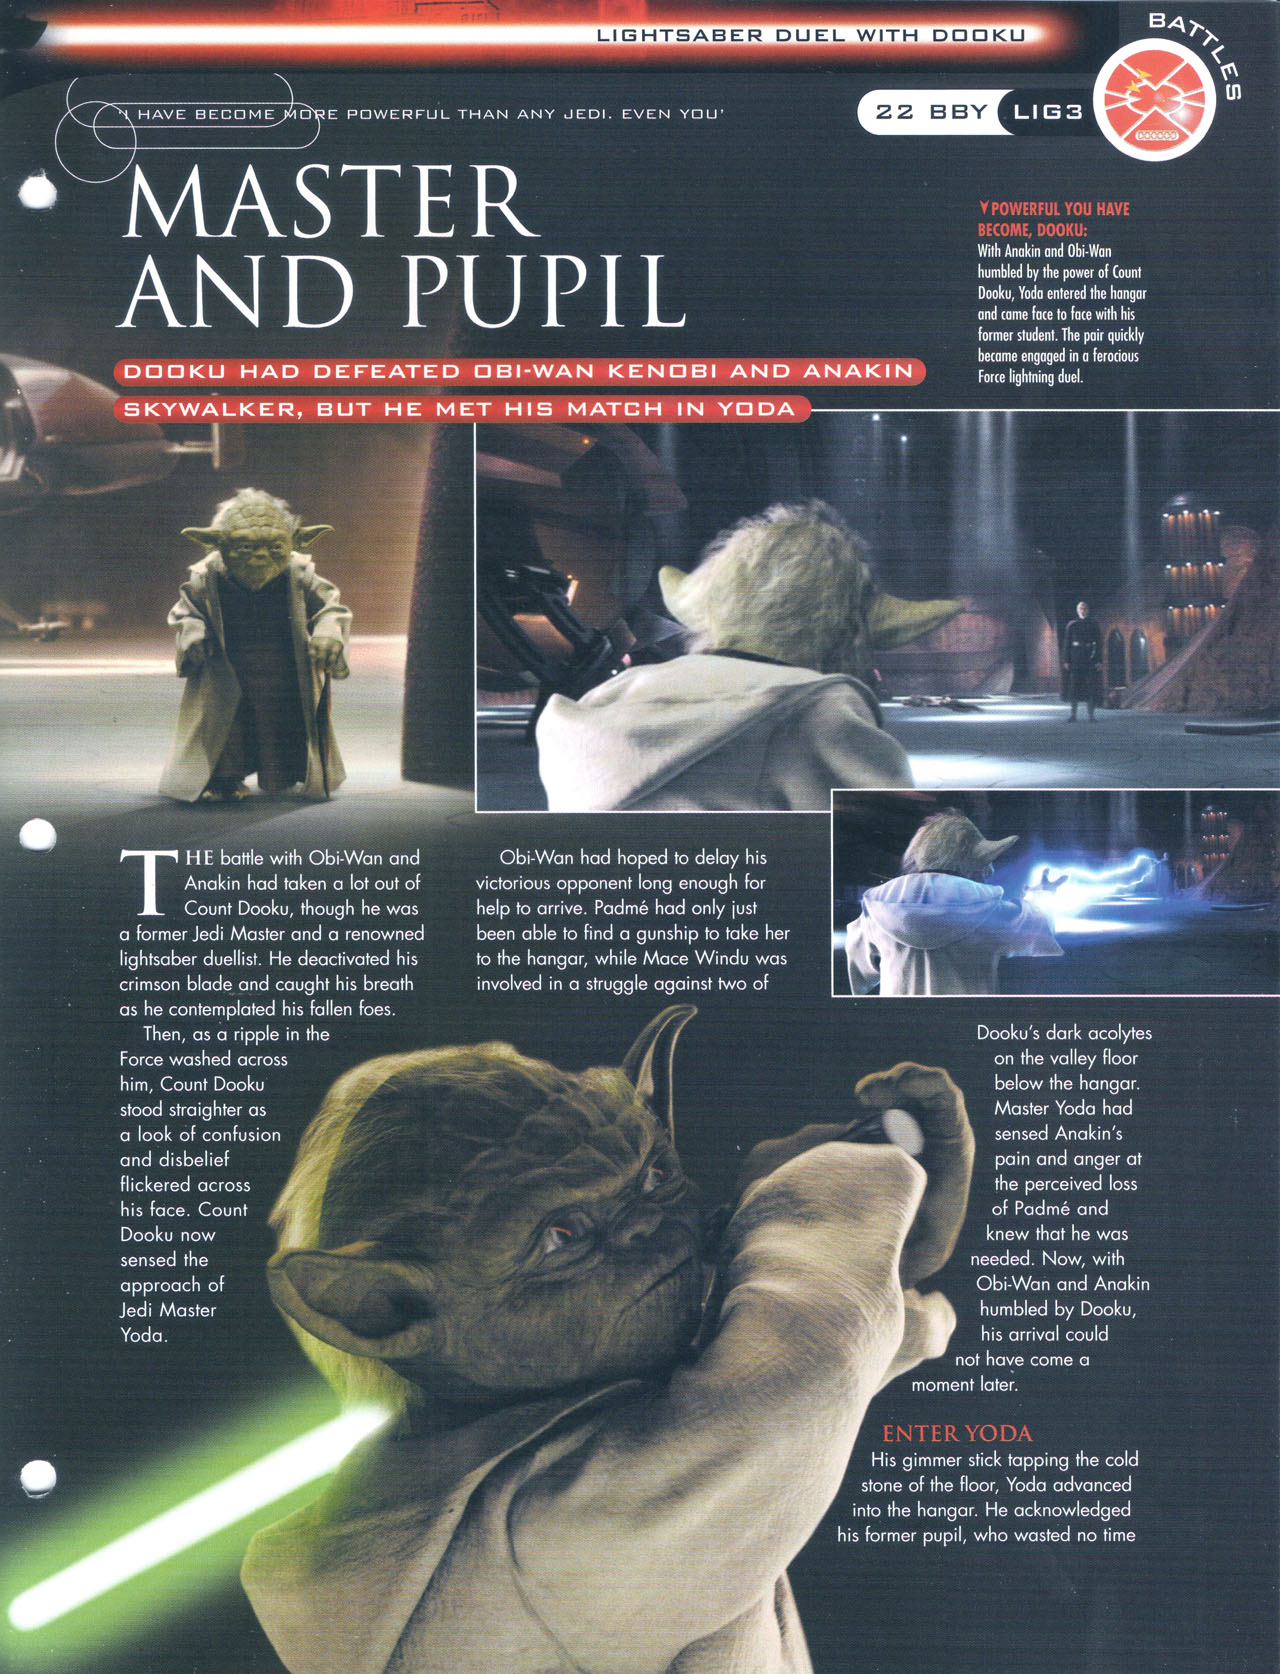 Count Dooku vs Yoda in AotC - was Yoda fighting at full capacity? - Page 2 103%2B003%2BBattles%2B%2526%2BEvents%2B-%2B22BBY%2BLIG3